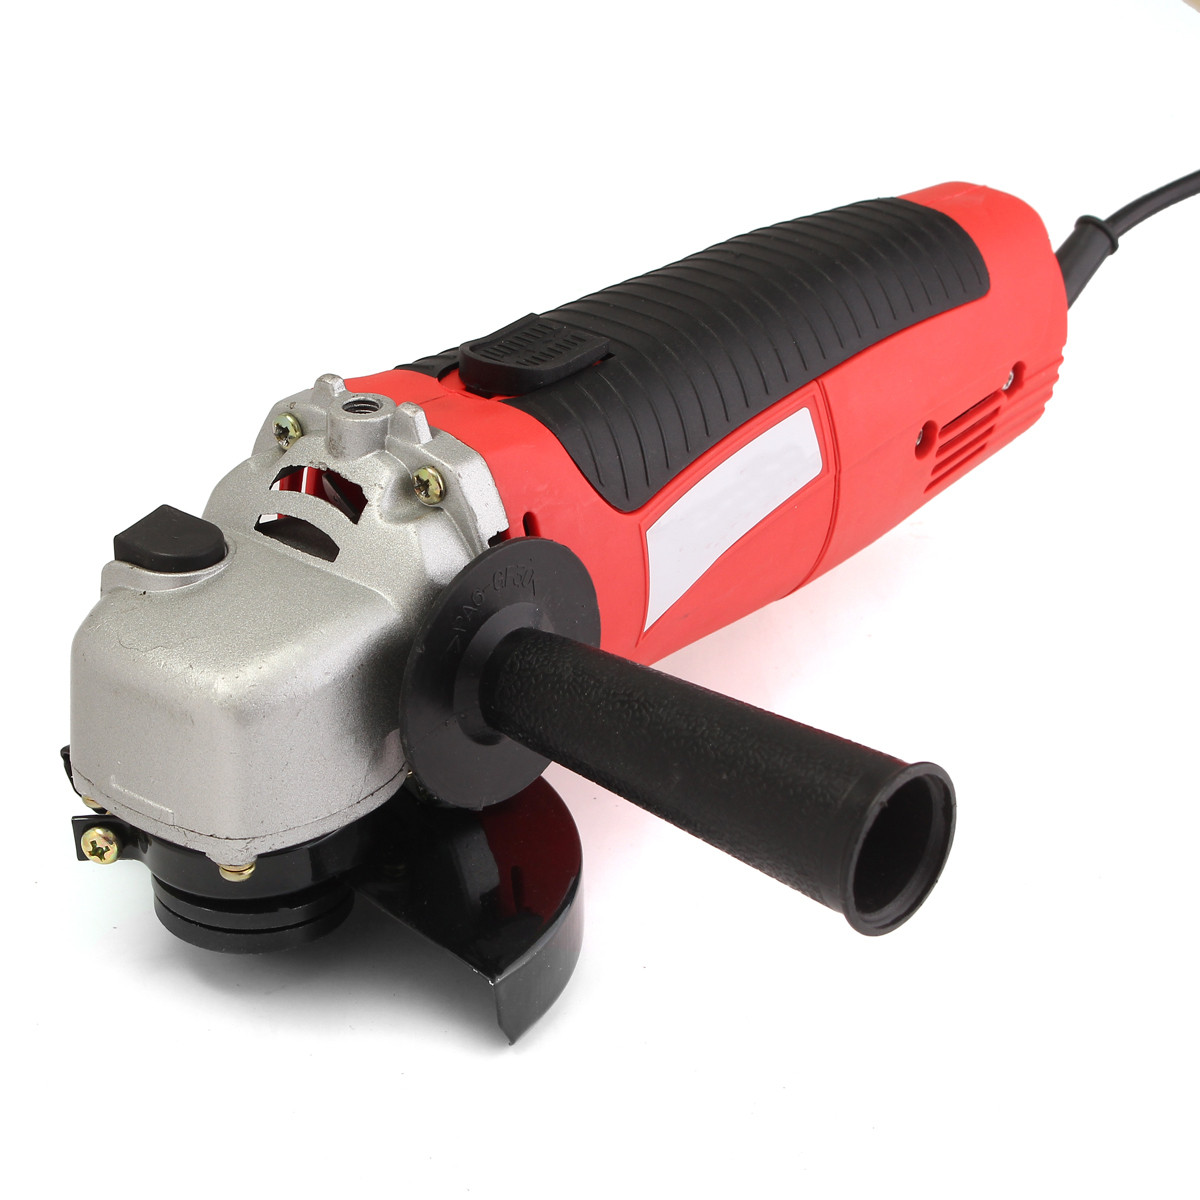 "4-1/2"" 850W Electric Angle Grinder Heavy Duty Cutting Grinding Cut Off Tool 230V"